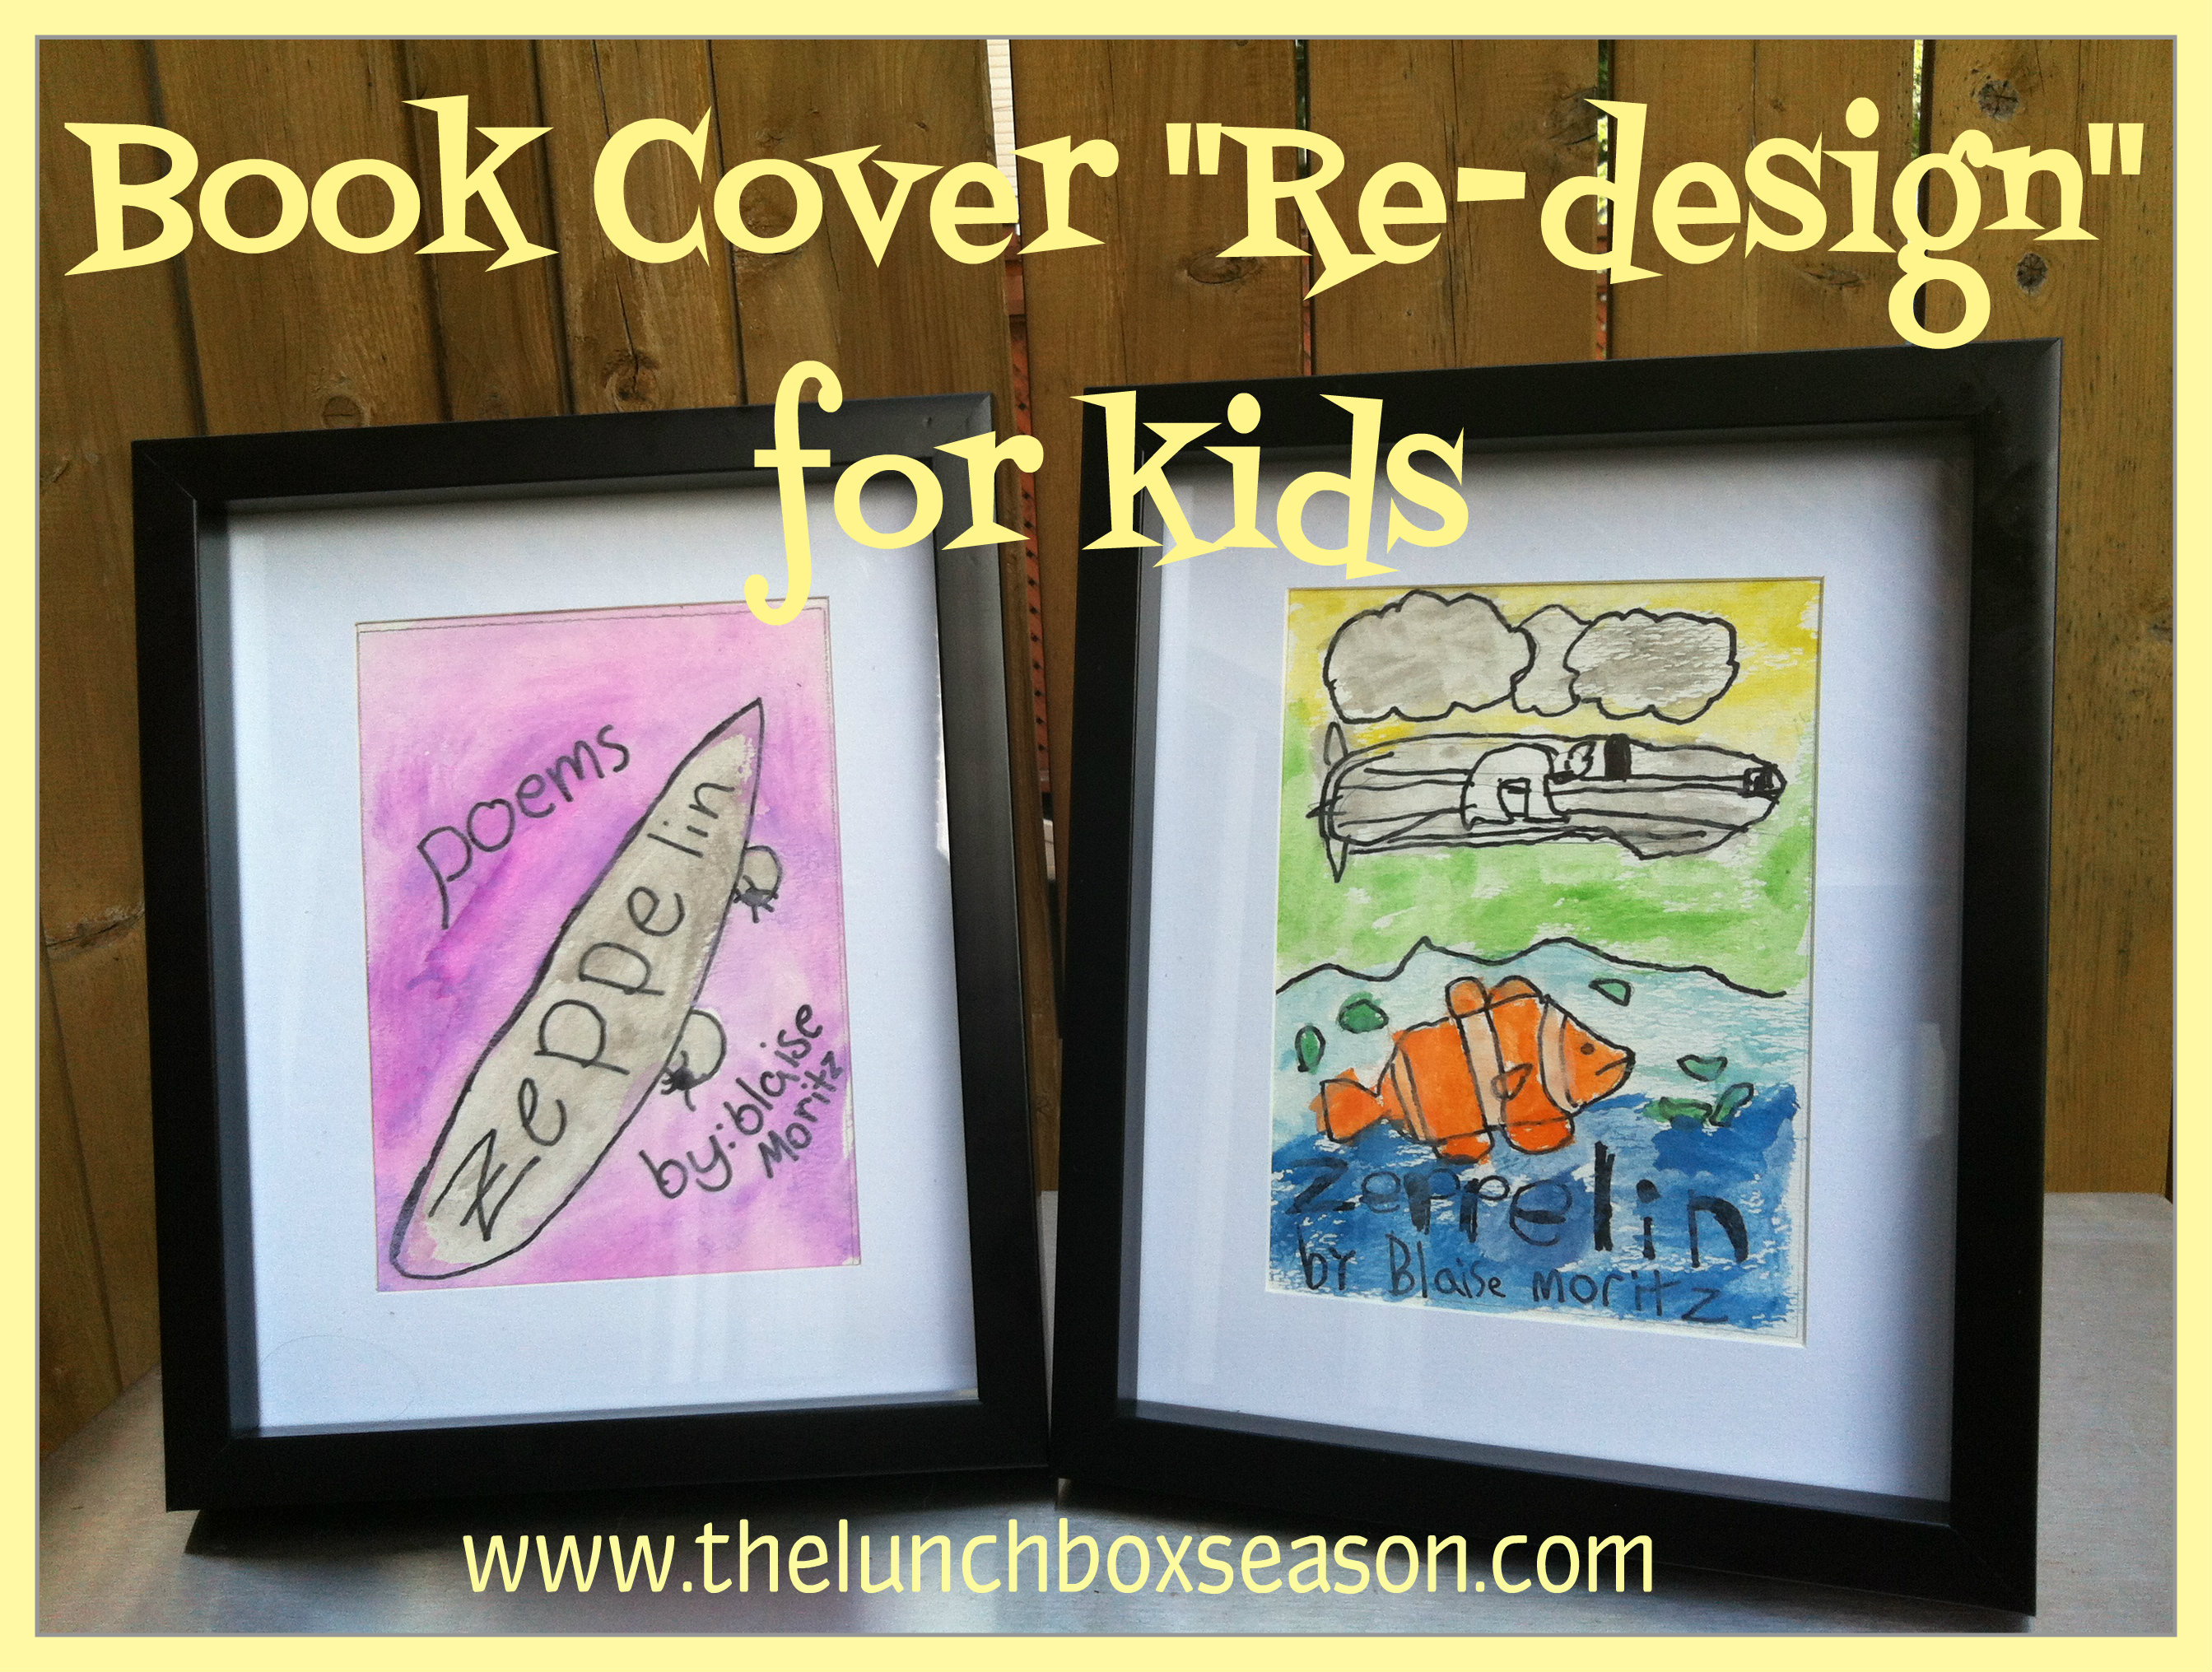 Book Cover Images For Kids : Book cover re design for kids the lunchbox season